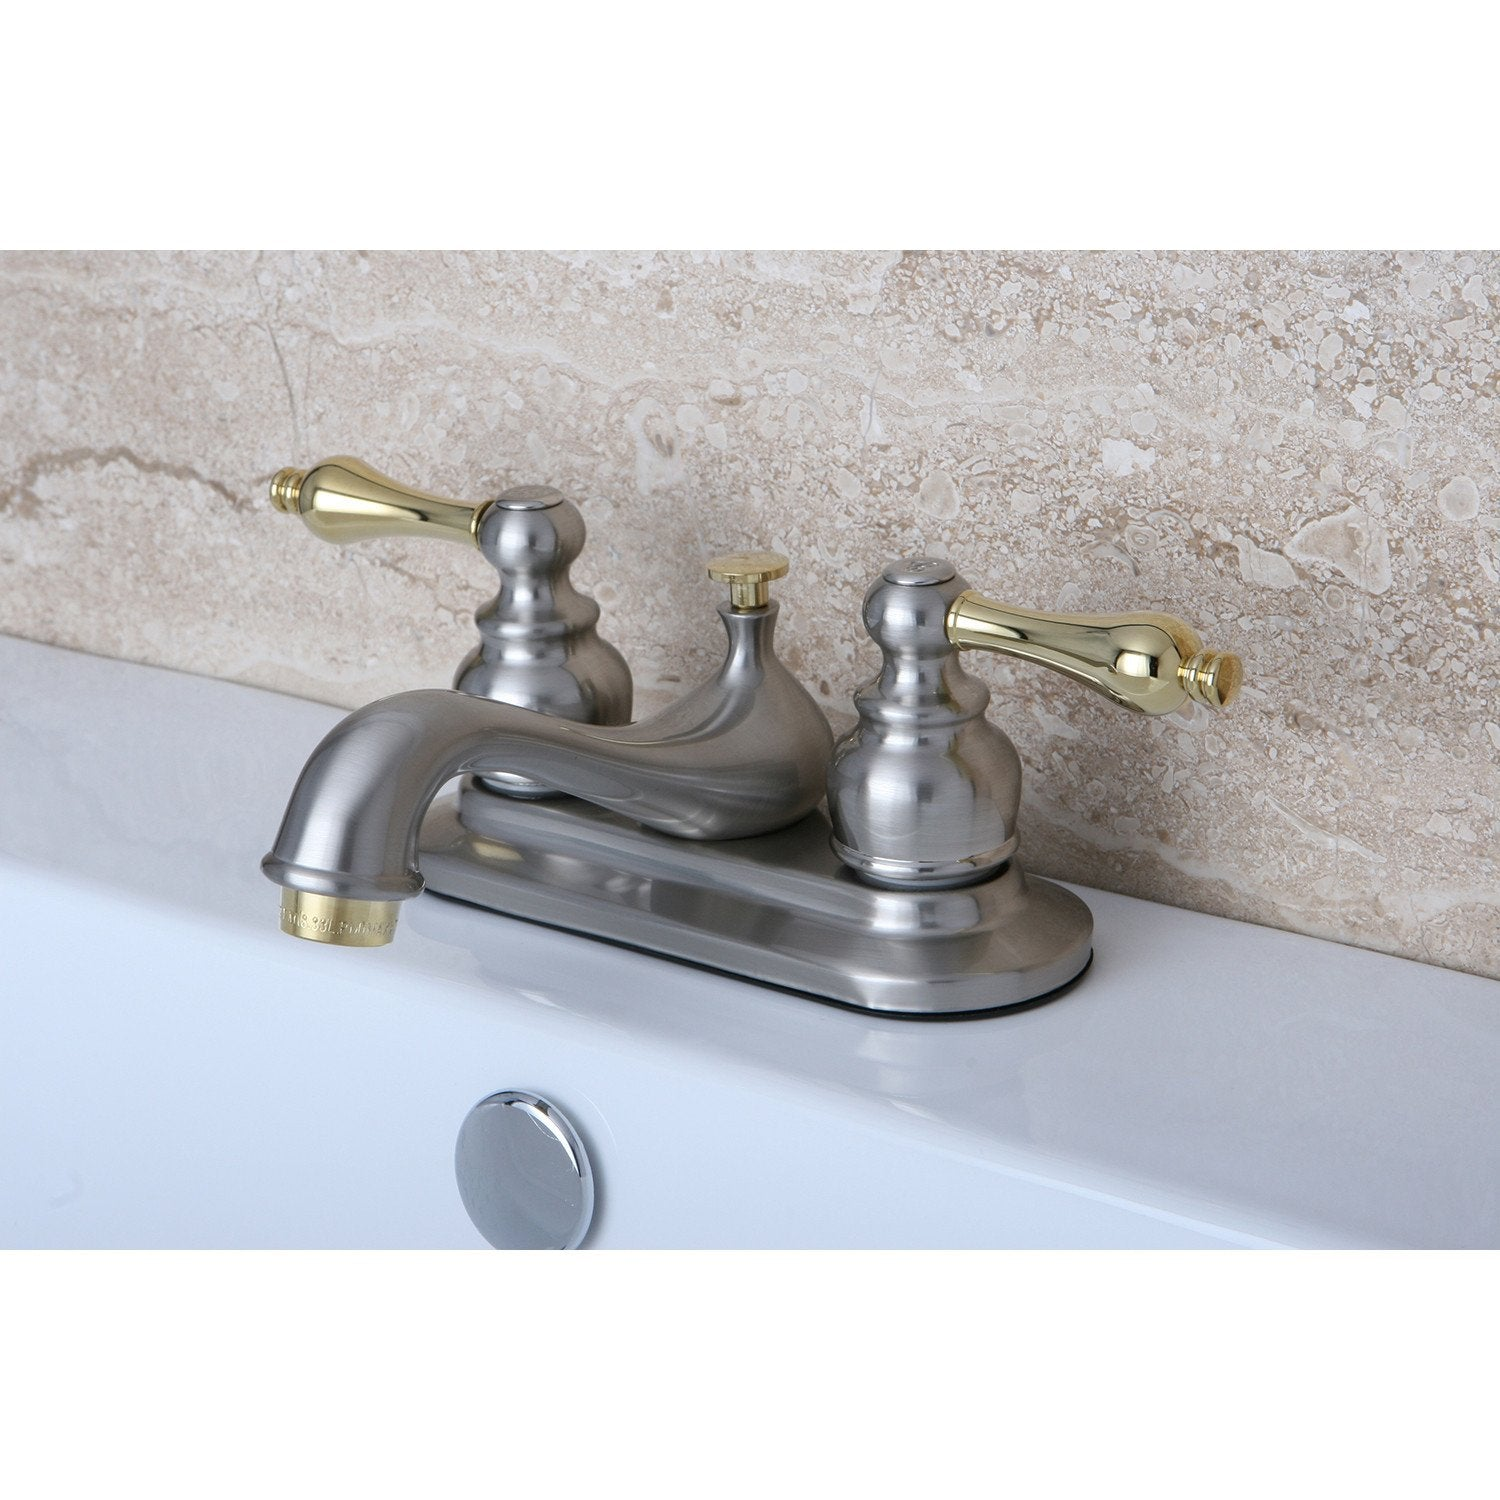 Kingston Satin Nickel / Polished Brass Centerset Bathroom Faucet KB609AL